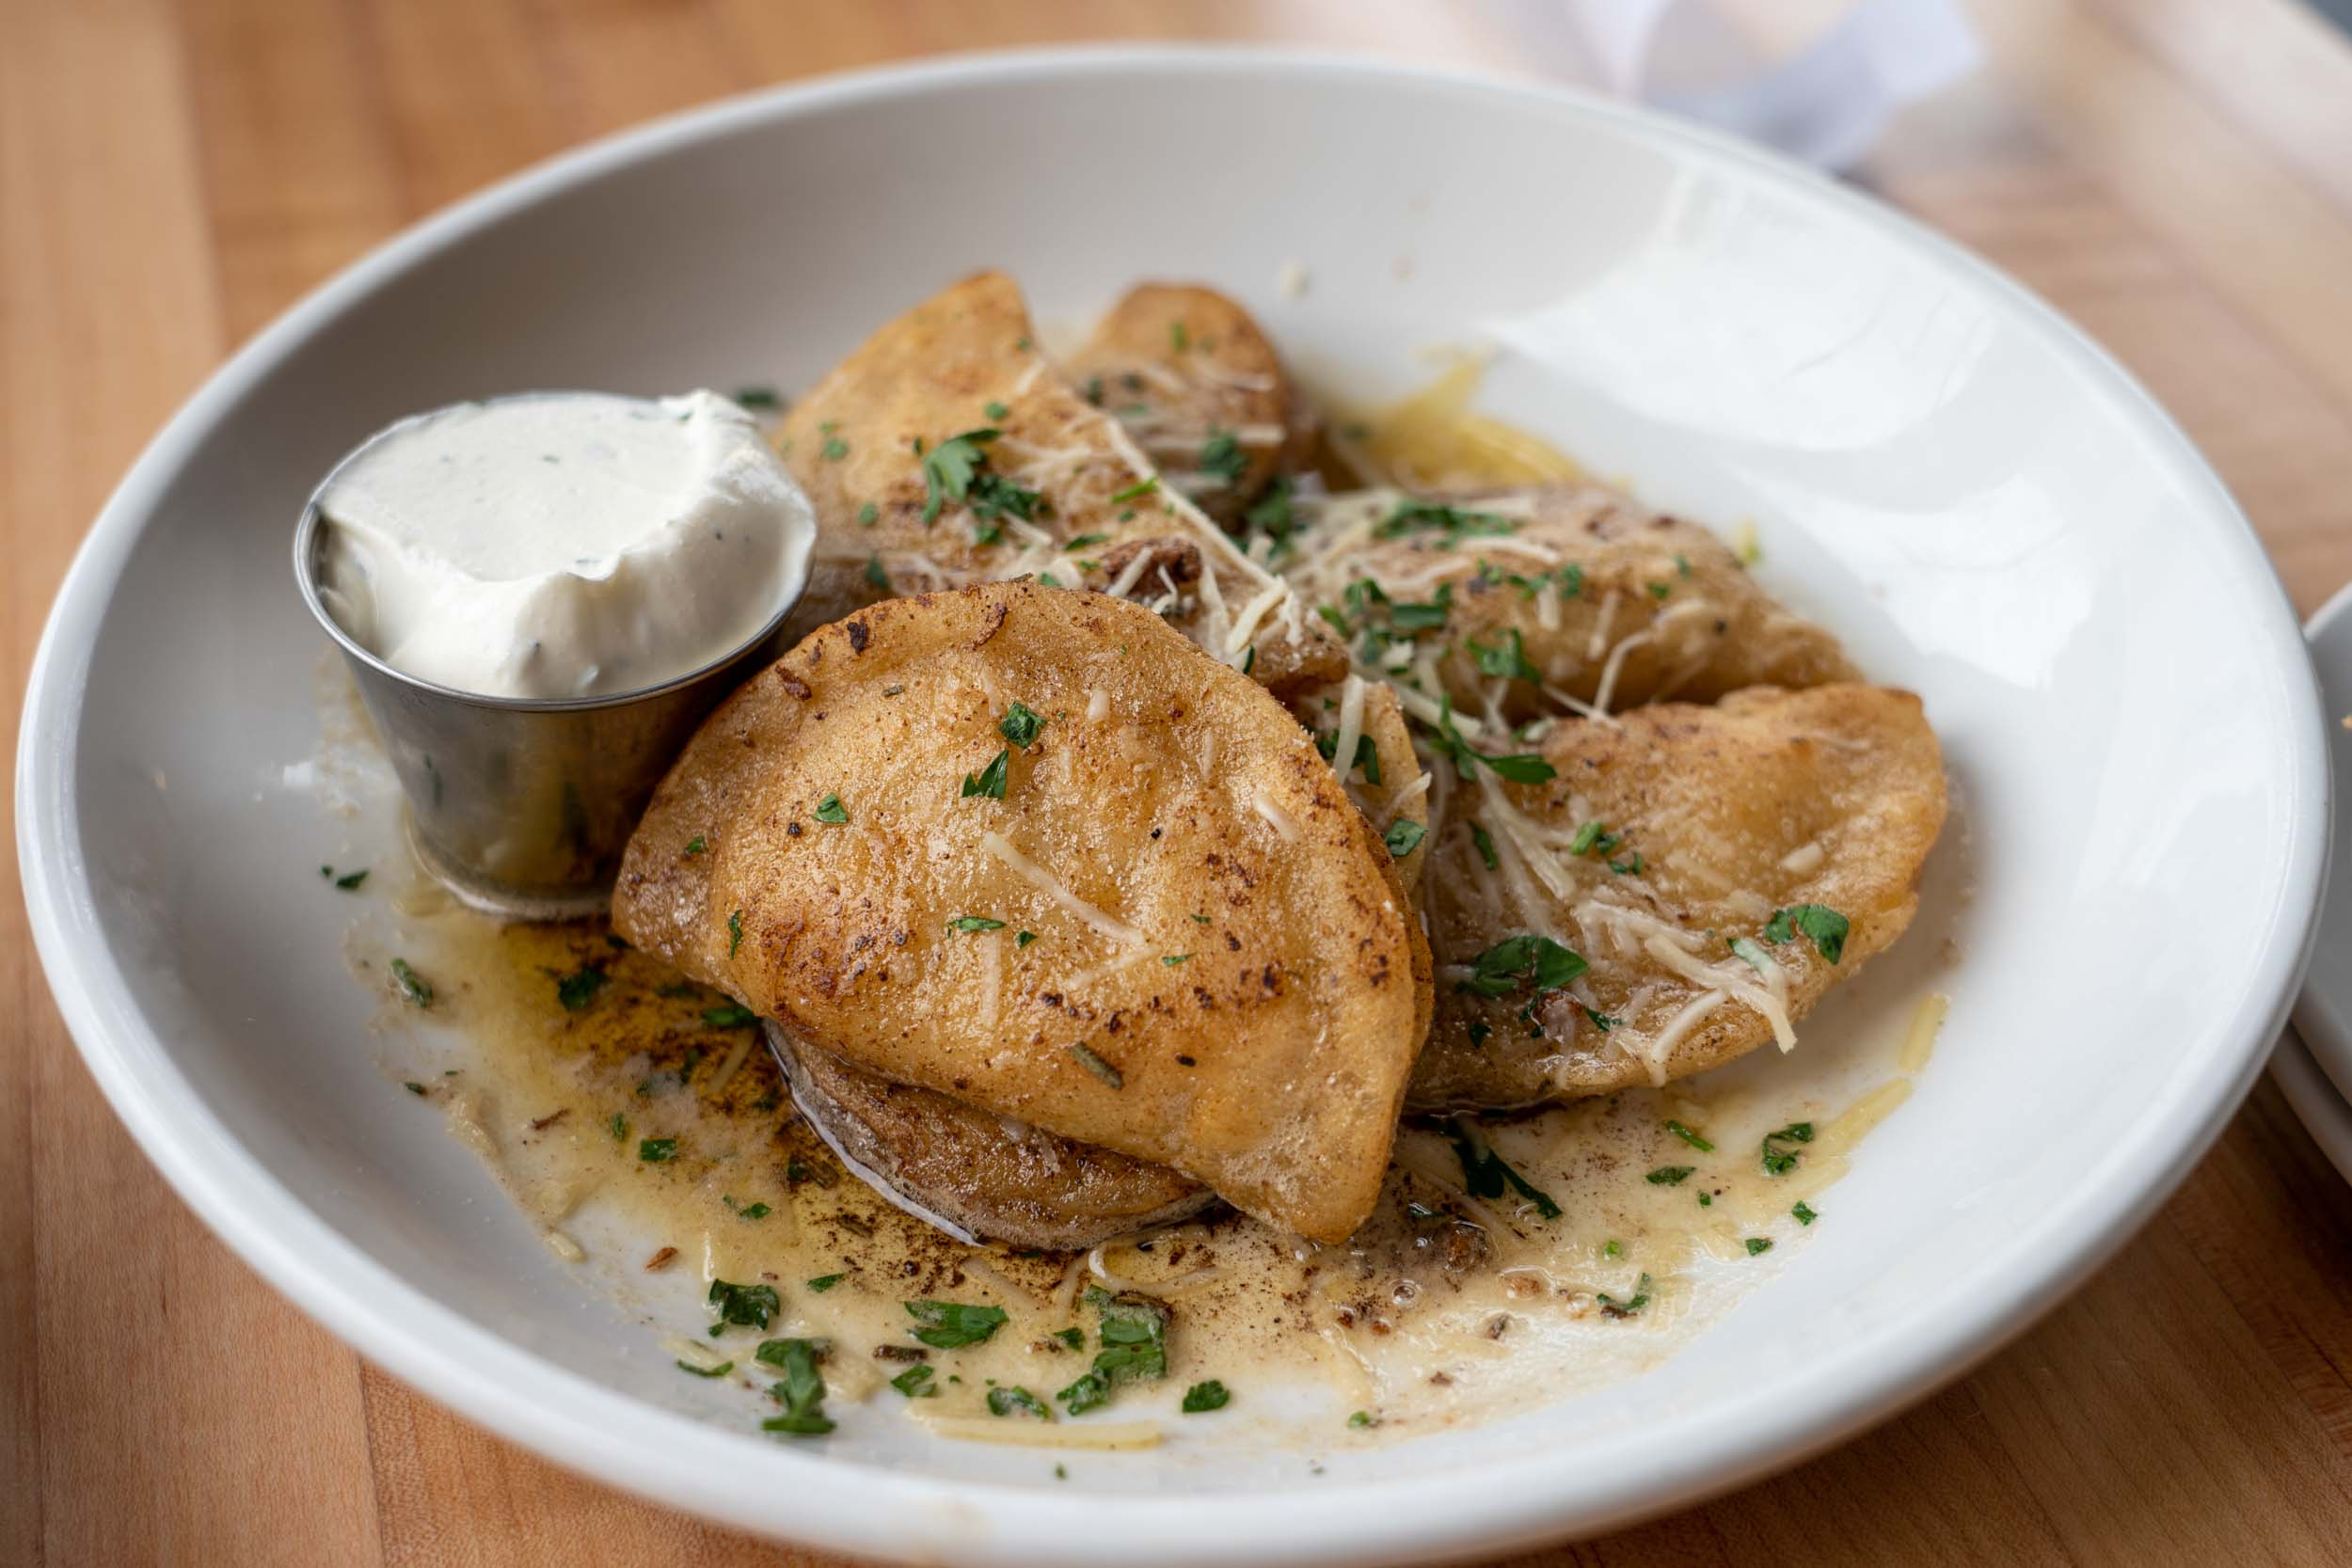 Pierogi Love: Where to Find the Best Pierogi in Cleveland